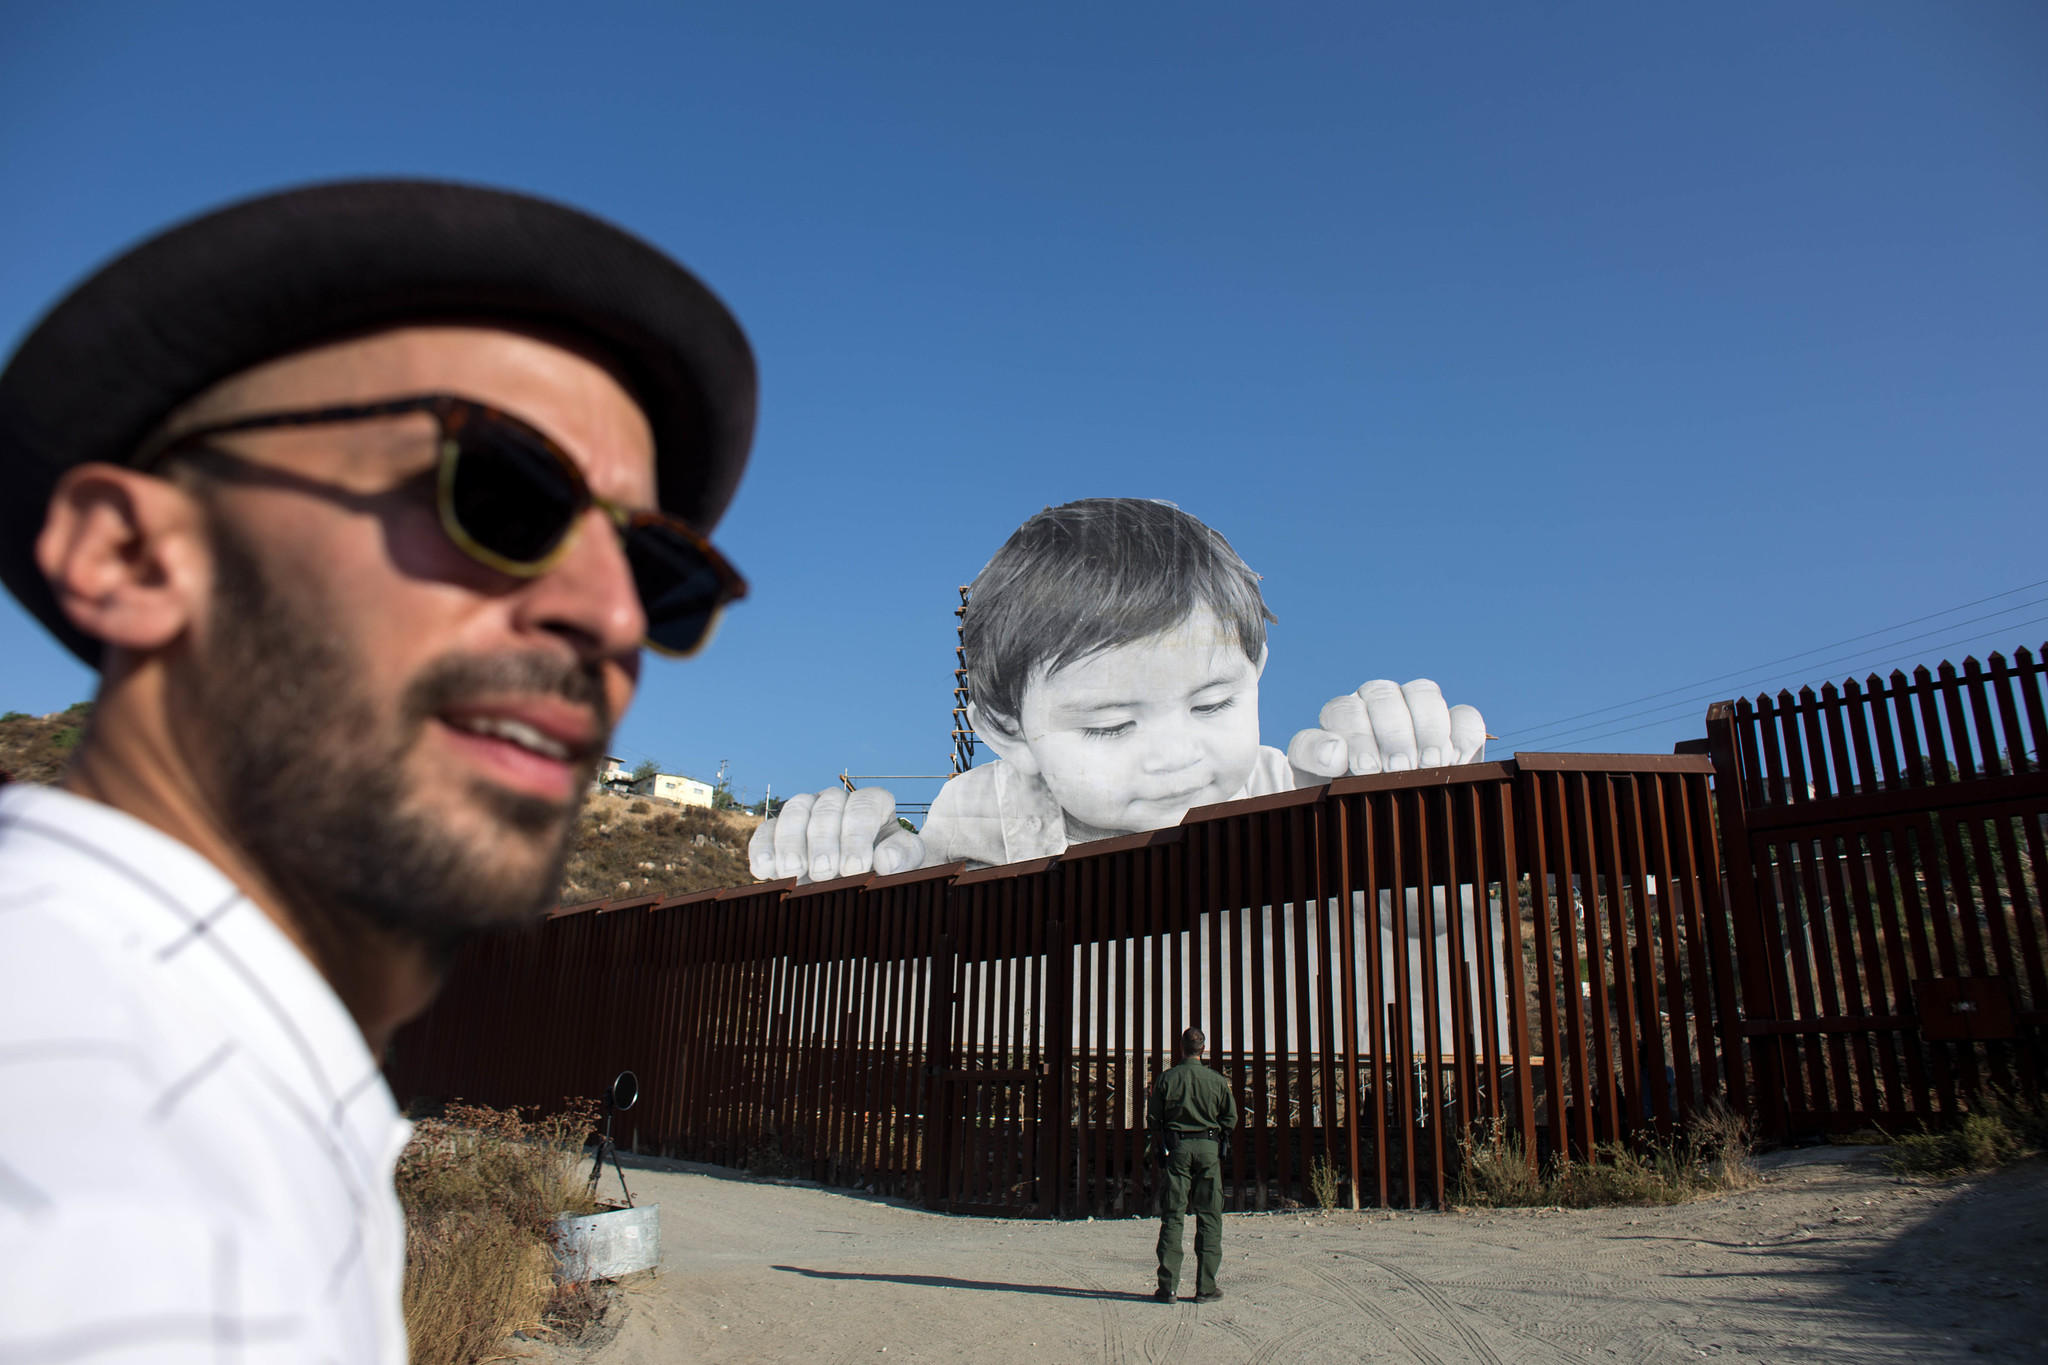 French artist JR, pictured near his artwork on the U.S.-Mexico border in Tecate, Calif., will be speaking about immigration Thursday in Los Angeles. (Guillermo Arias / AFP/Getty Images)